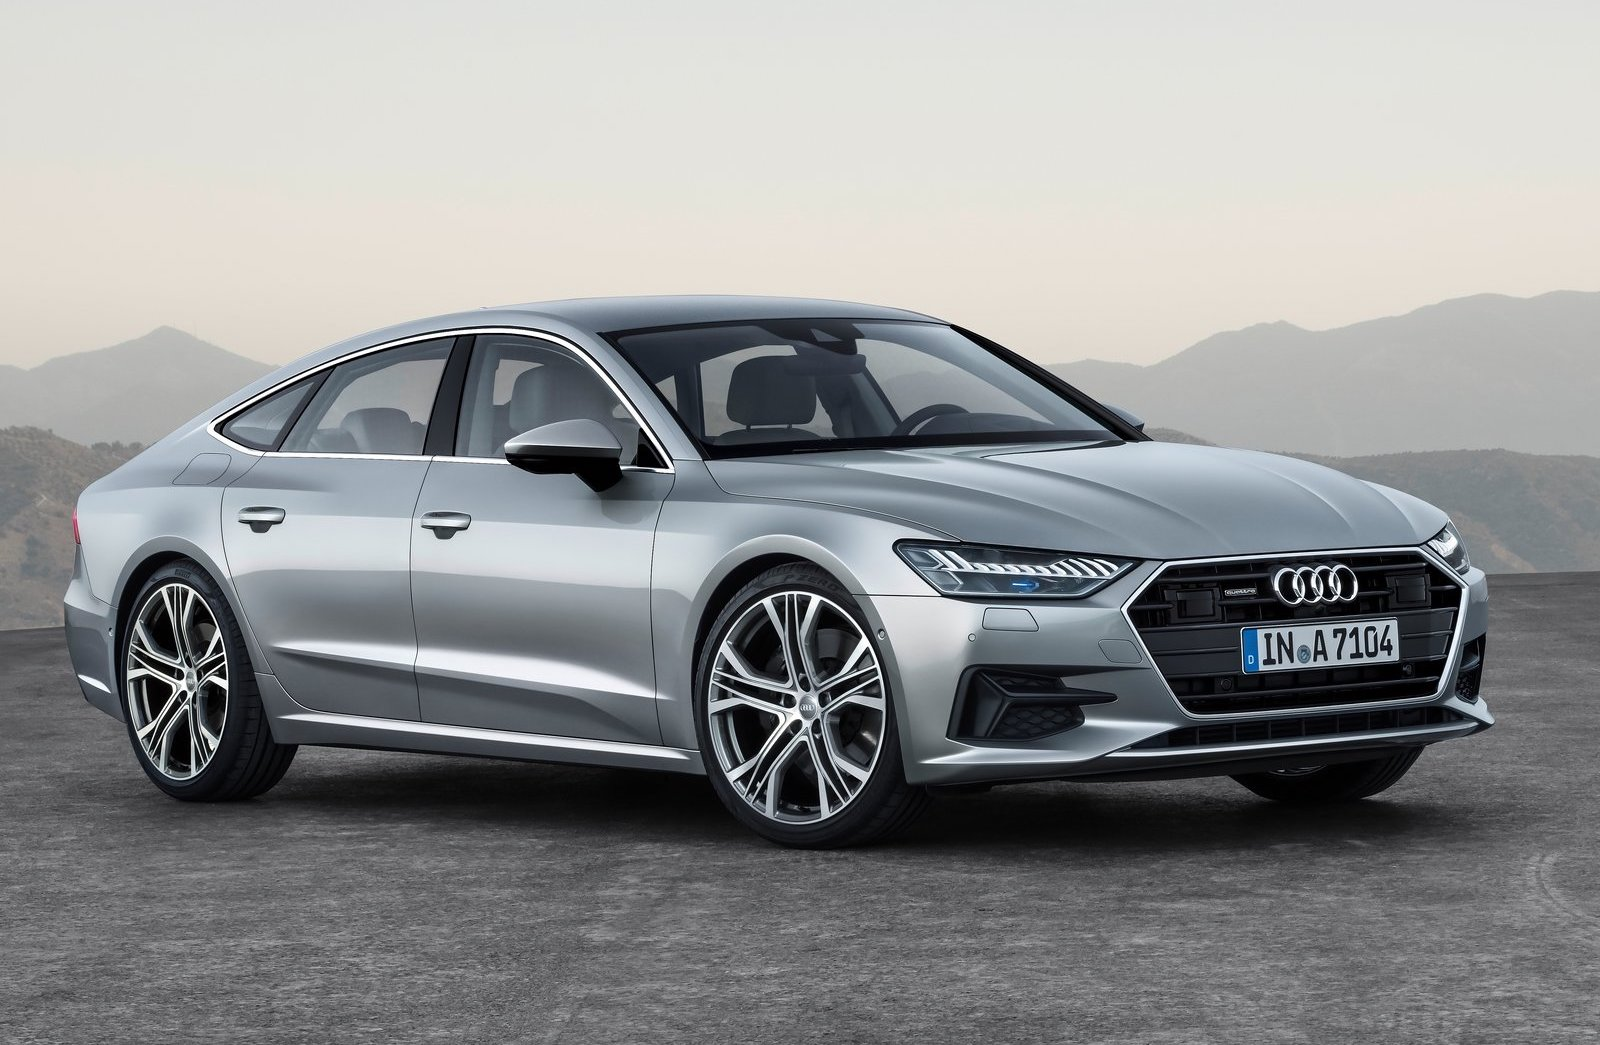 2018 audi a7 sportback revealed gets mild hybrid tech performancedrive. Black Bedroom Furniture Sets. Home Design Ideas